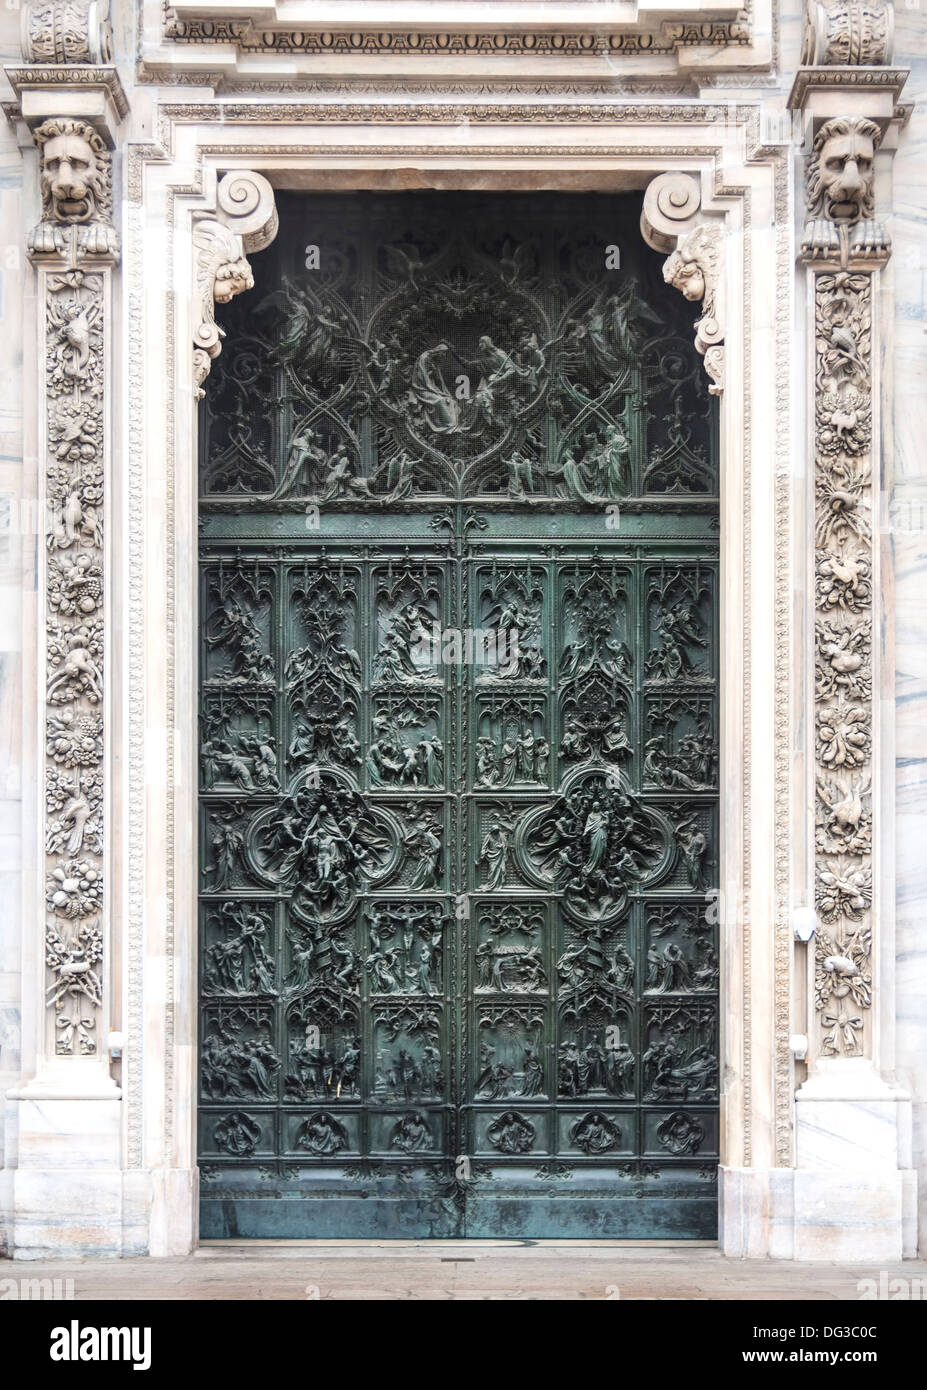 Door detail from the Duomo in Milano, Italy - Stock Image